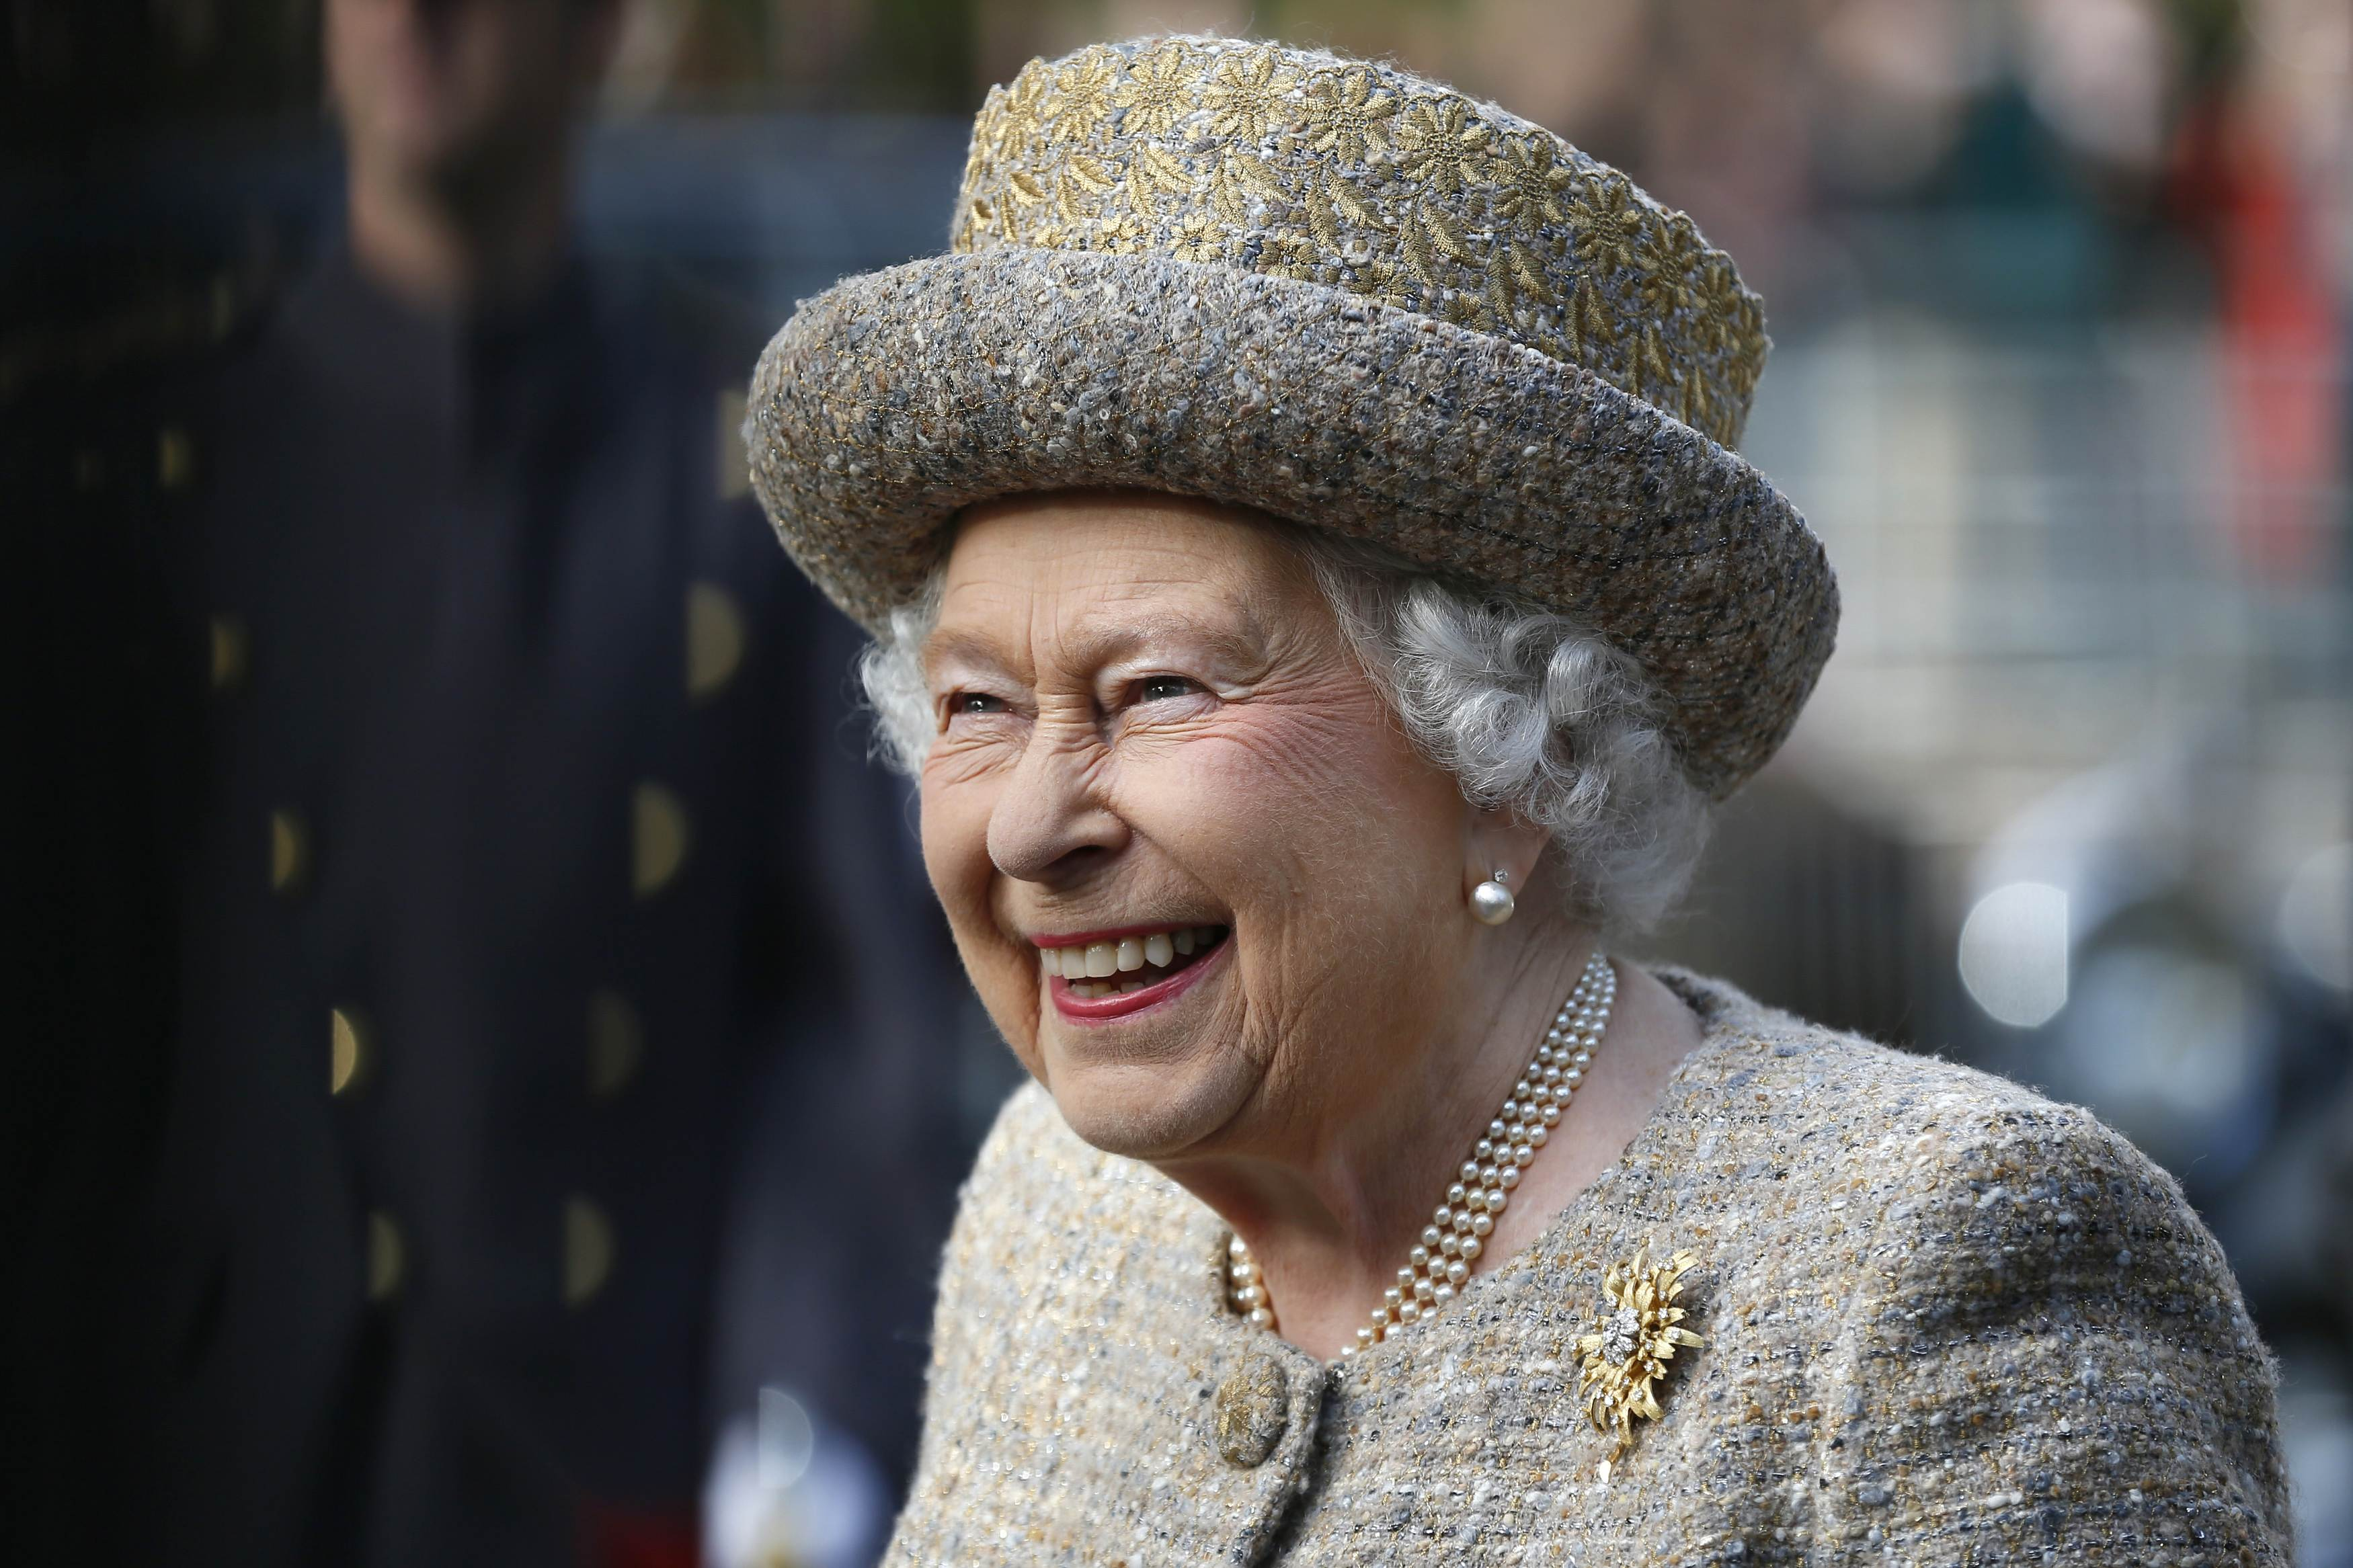 Queen Elizabeth II smiles as she arrives before the Opening of the Flanders' Fields Memorial Garden at Wellington Barracks on November 6, 2014 in London, England   Photo: Getty Images